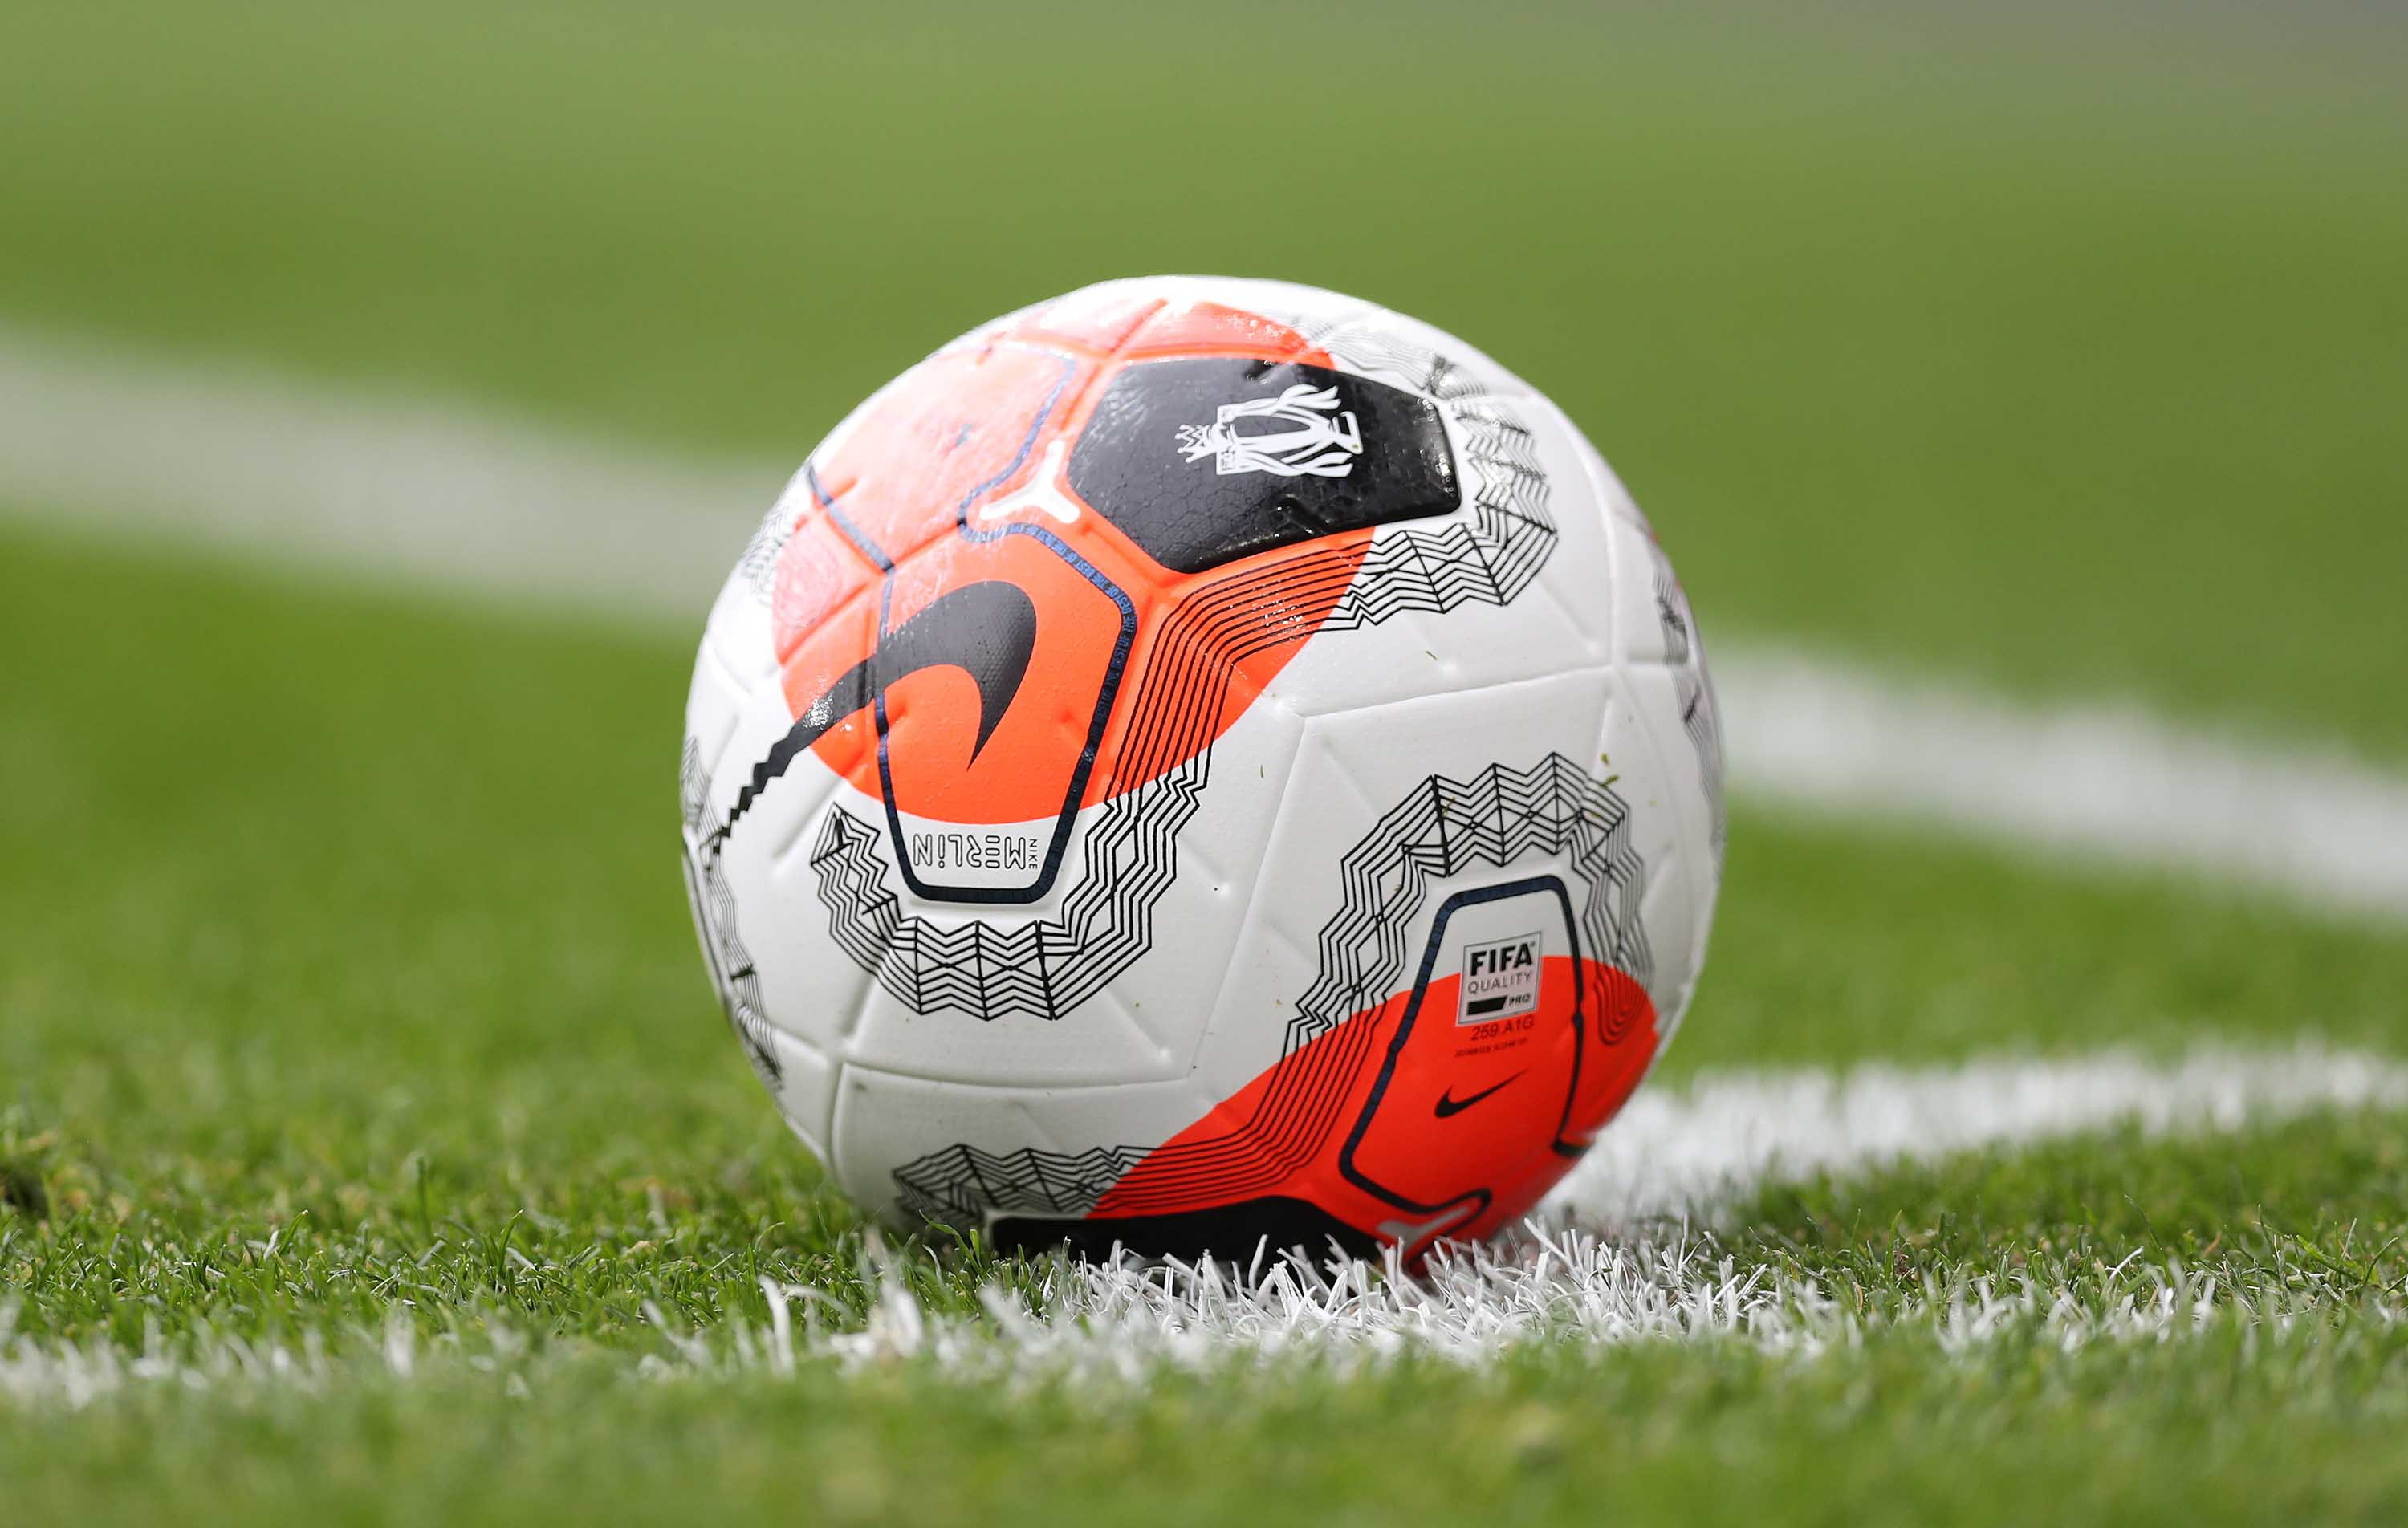 A match ball is pictured during the Premier League game between Arsenal FC and West Ham United at Emirates Stadium in London, England, on March 7.